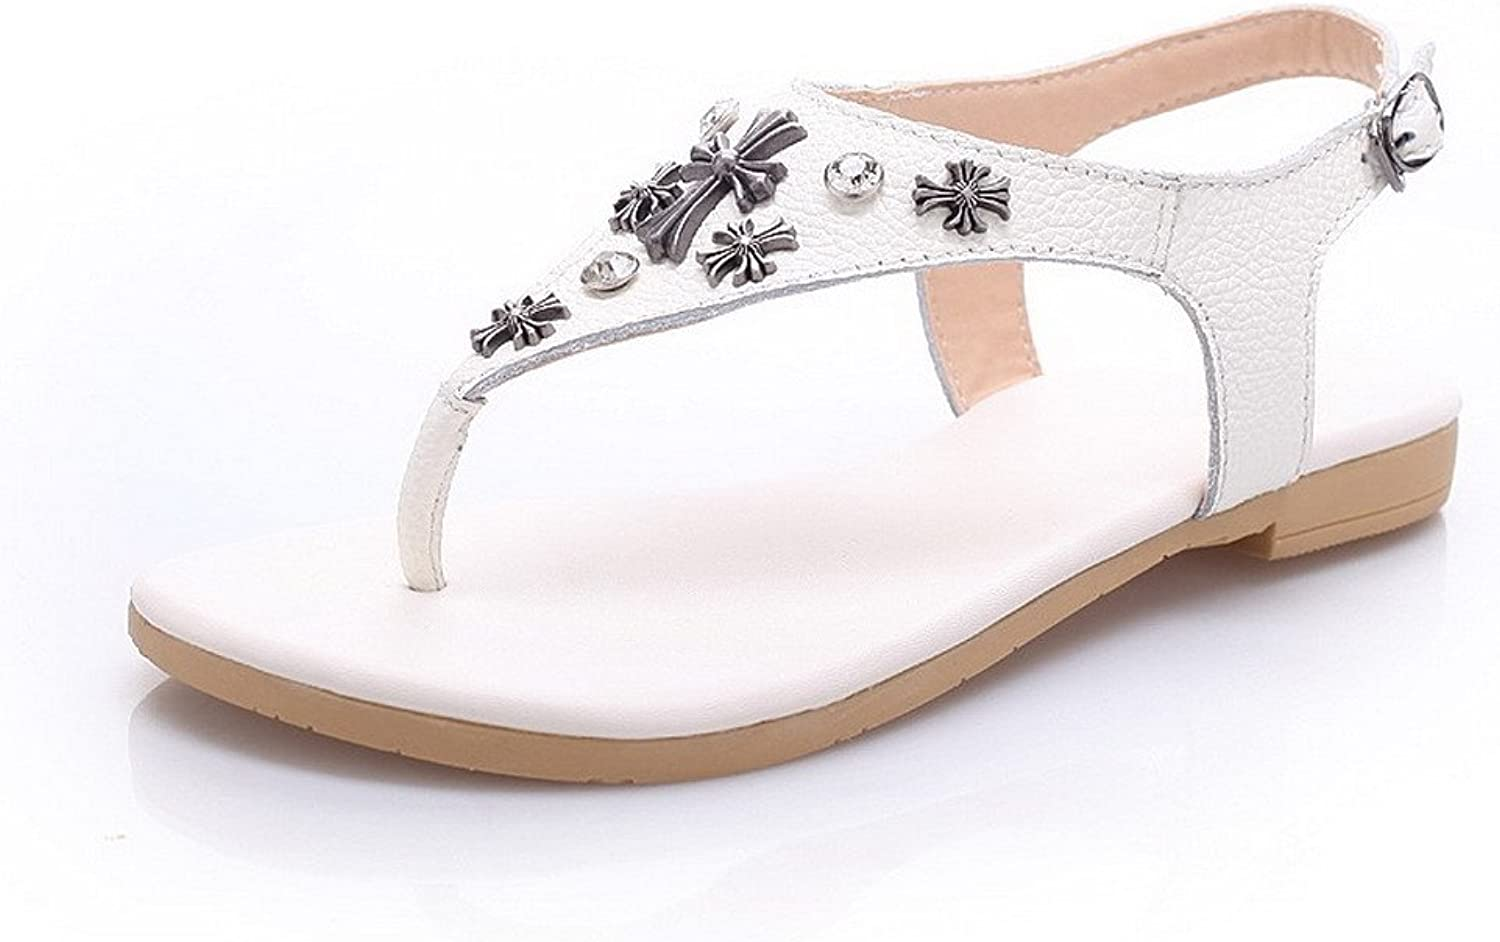 AmoonyFashion Women's Cow Leather Solid Buckle Open Toe No-Heel Sandals